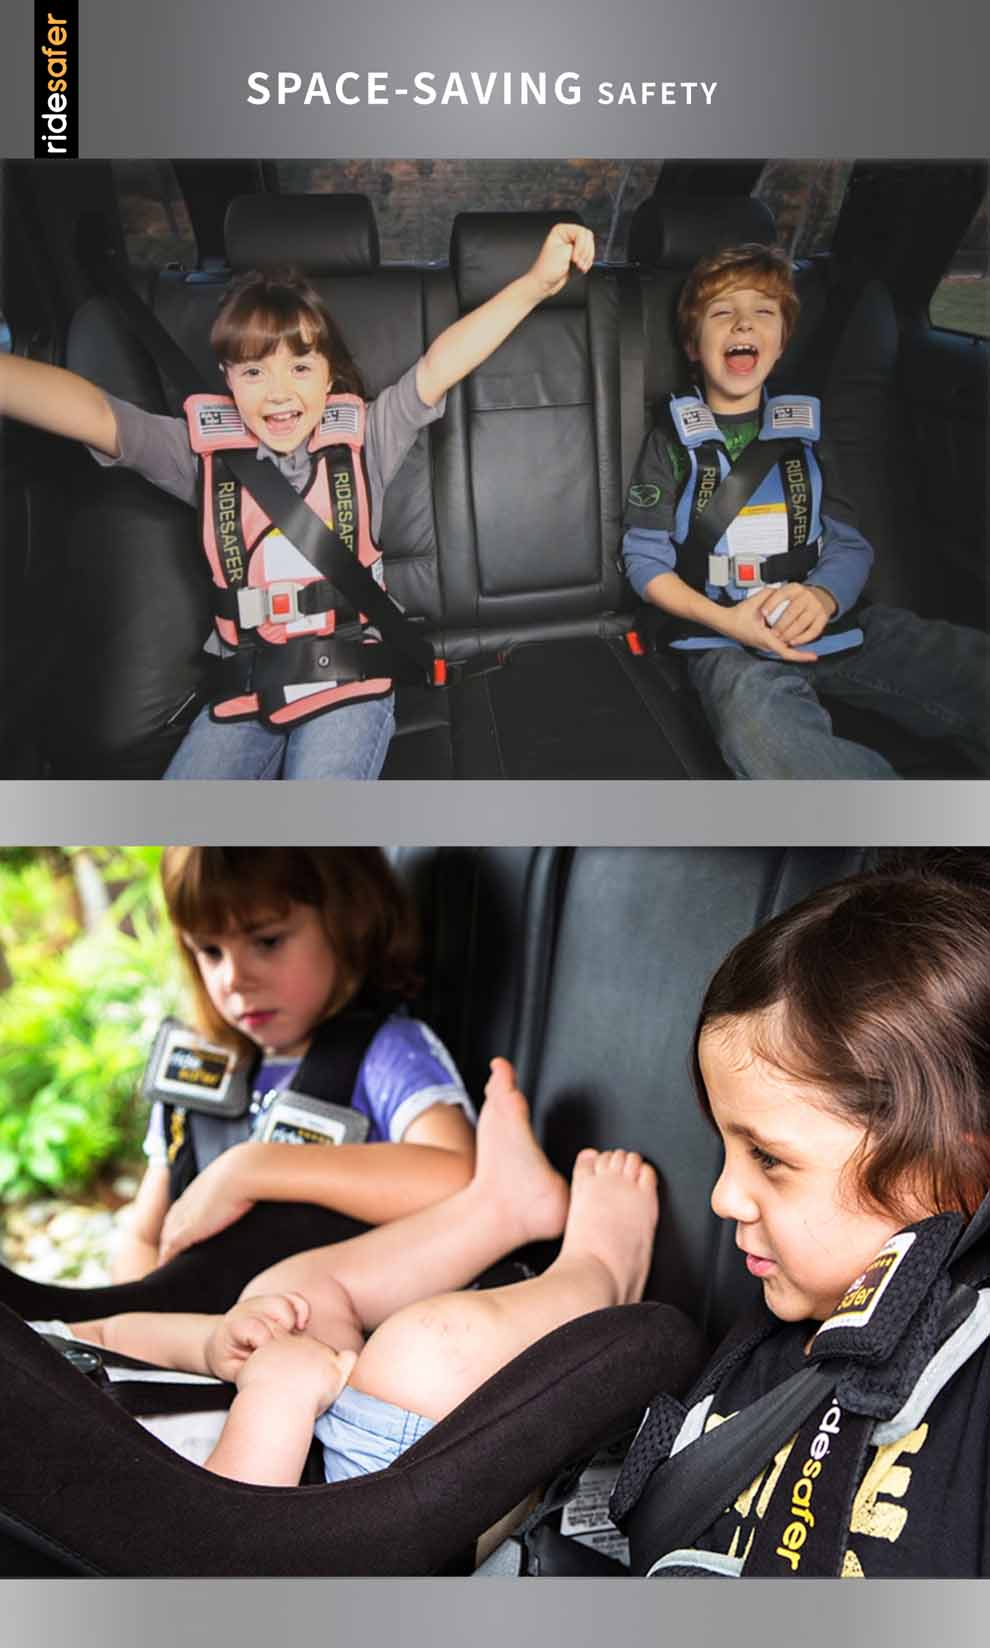 This Revolutionary Wearable Child Restraint Is Lightweight And Easy To Use